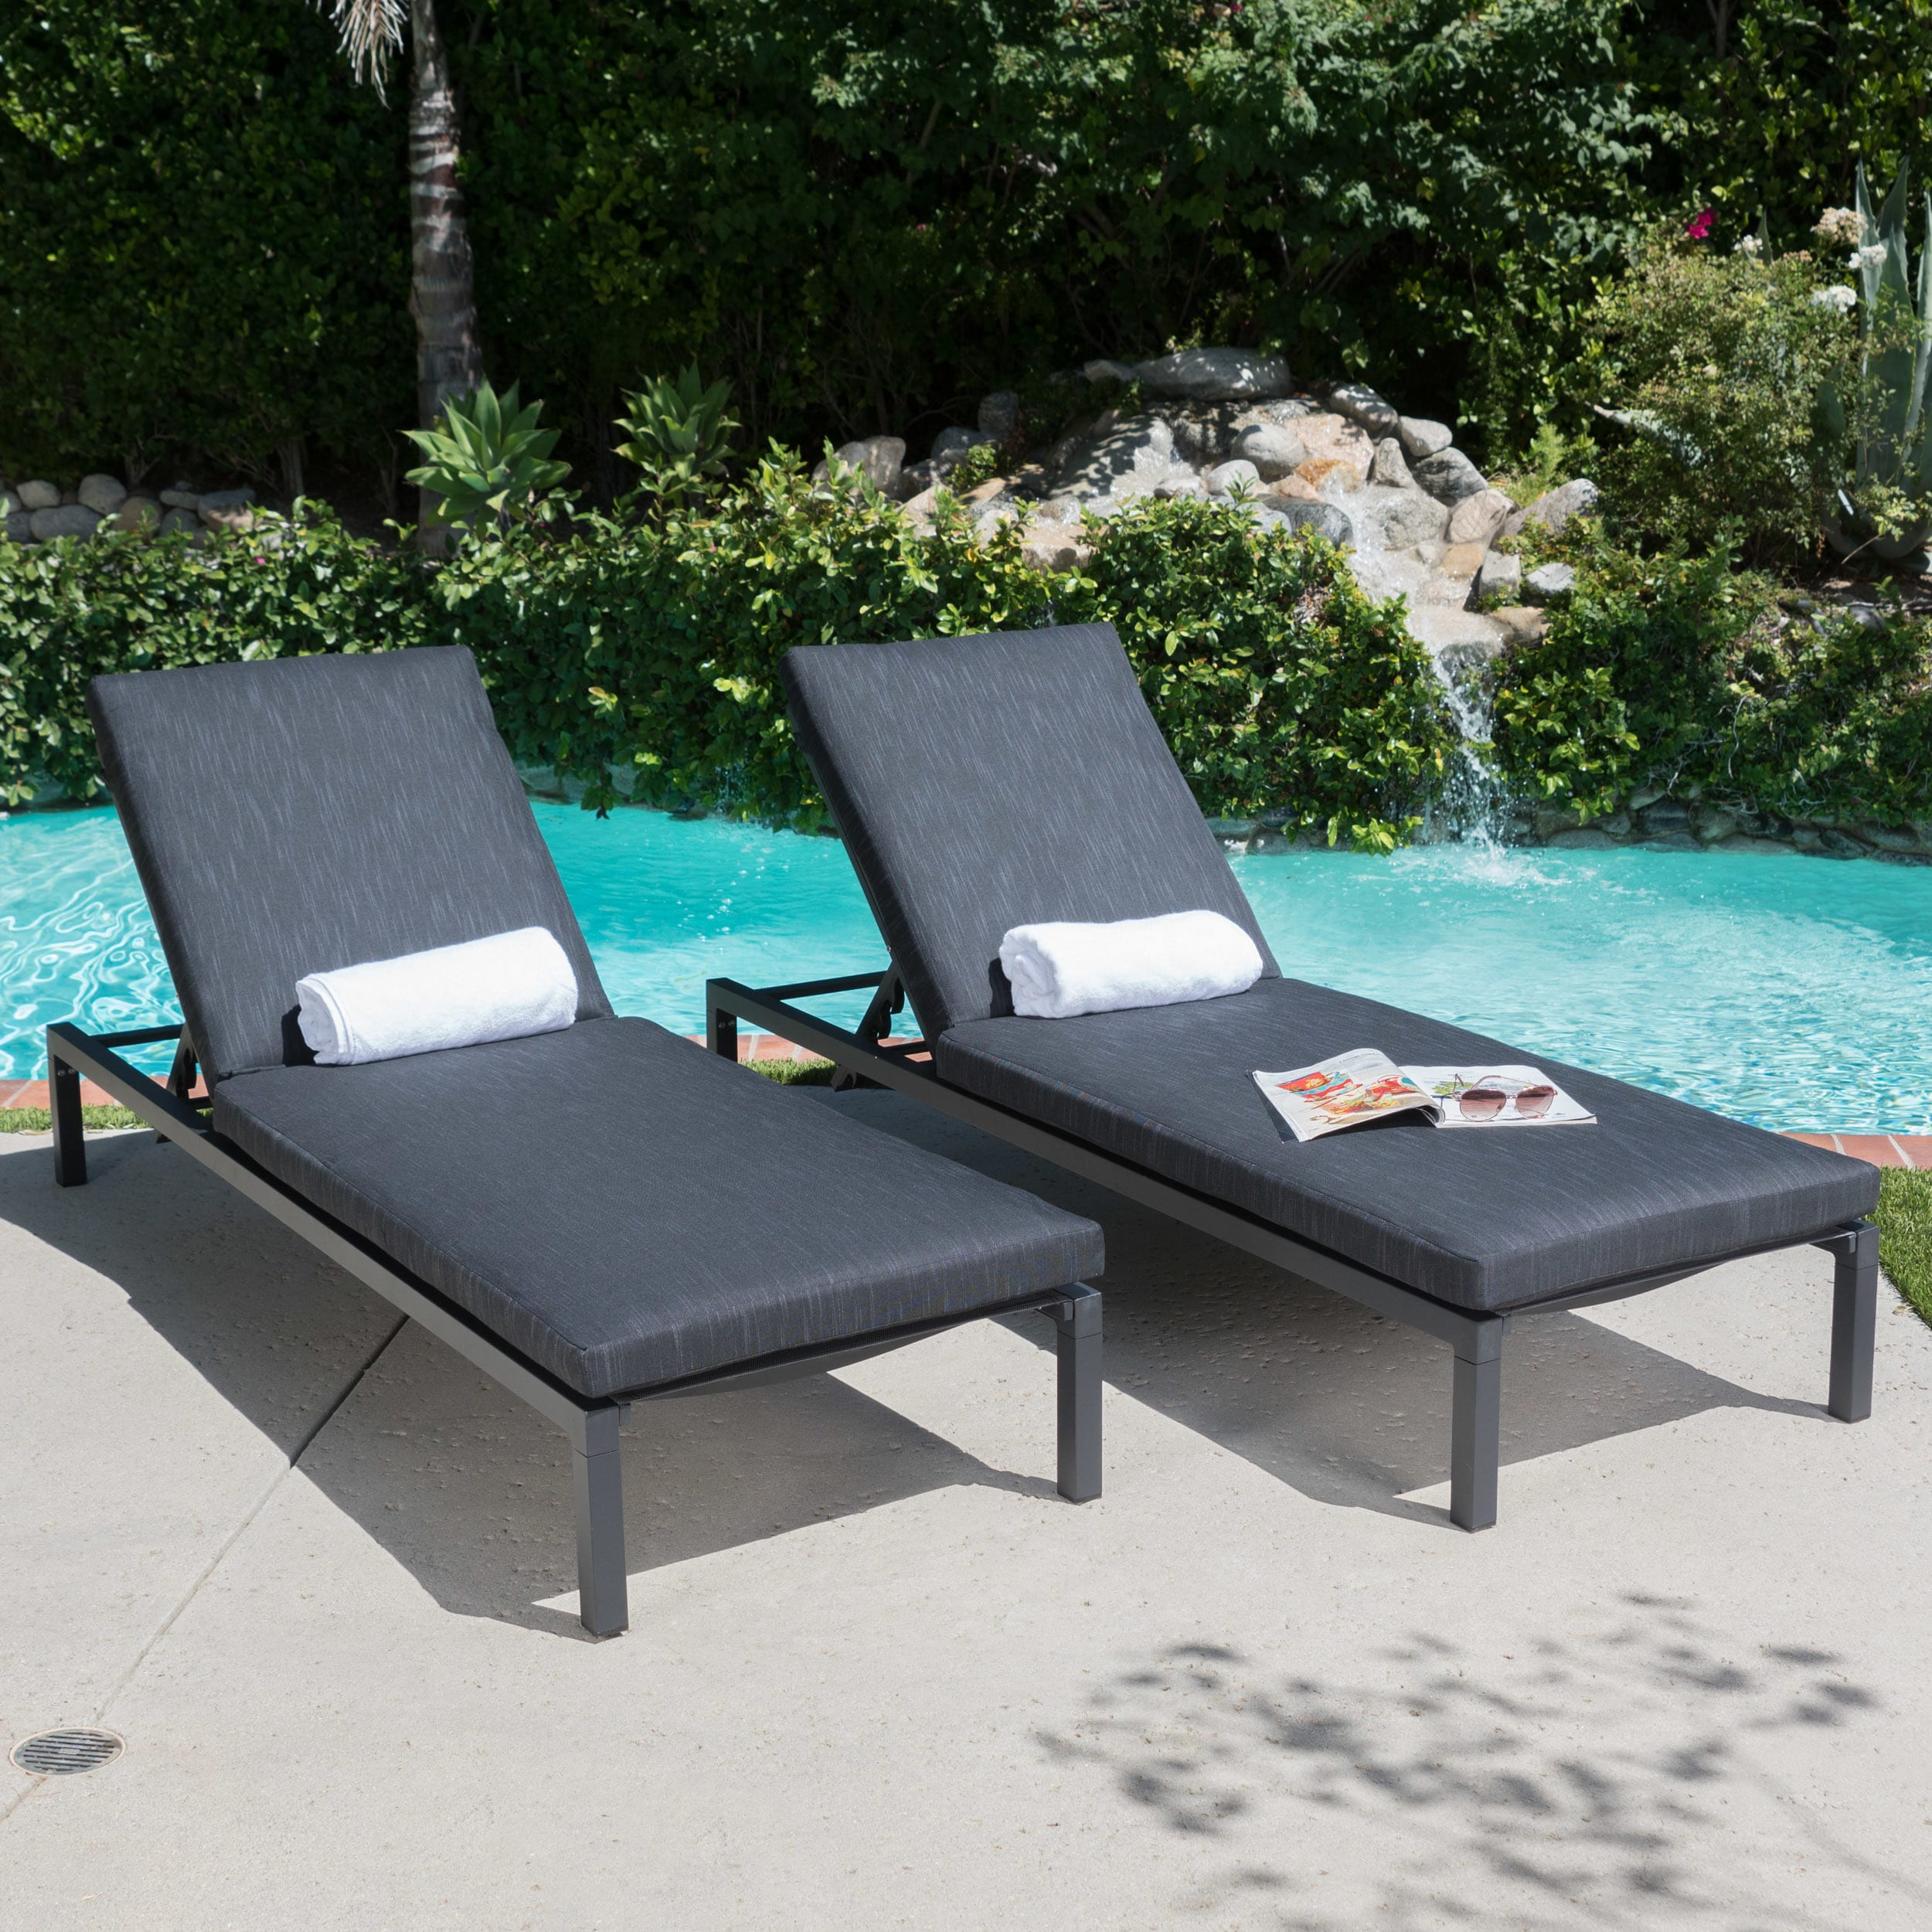 Christopher Knight Home Navan Outdoor Aluminum Chaise Lounge with Cushion (Set of 2) by